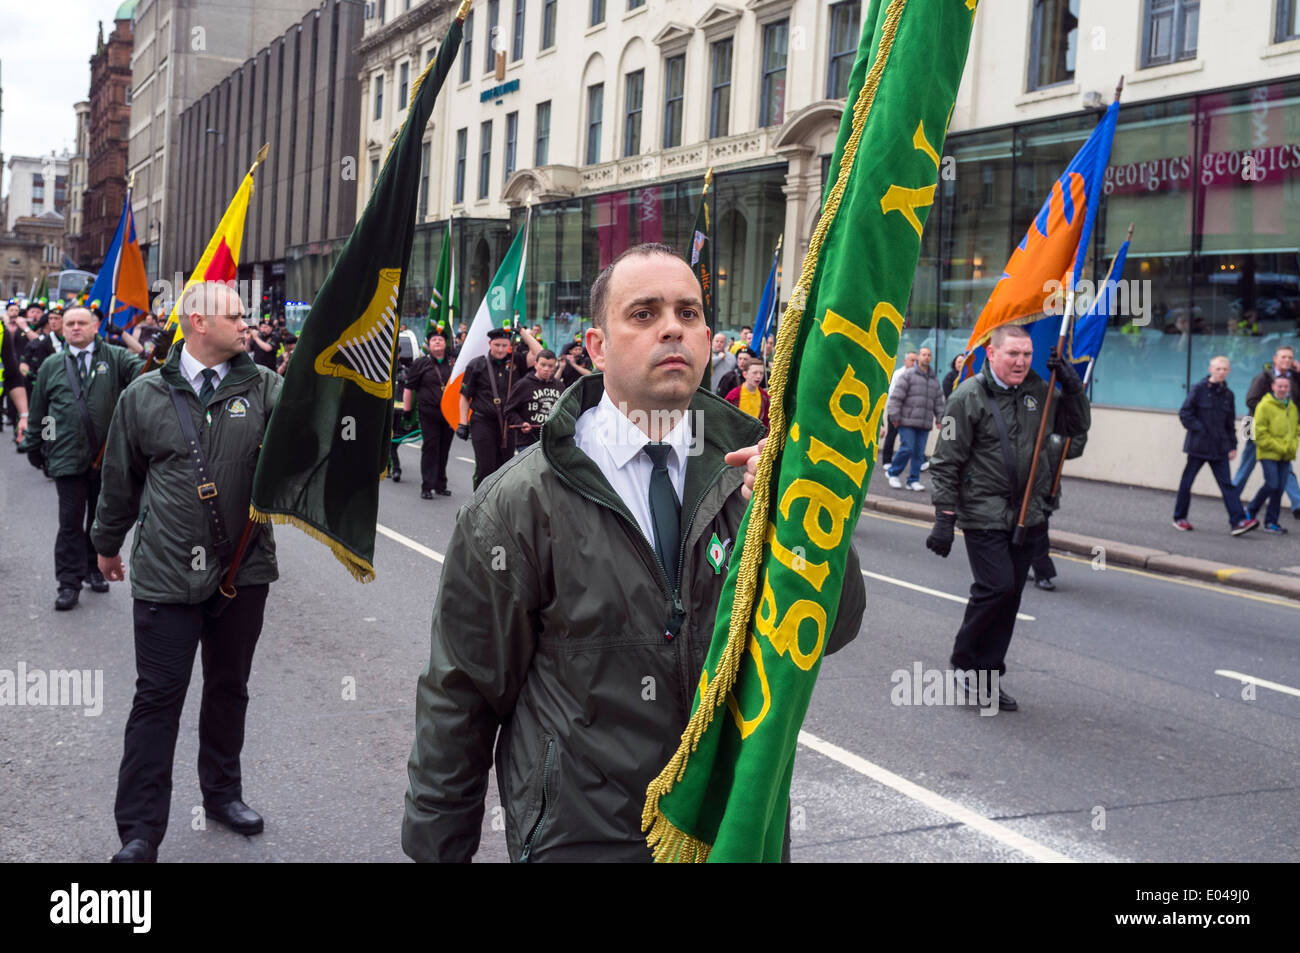 Members of the pro-Irish republican supporting Cairde na Heireann organisation parading through Glasgow city Scotland, UK - Stock Image